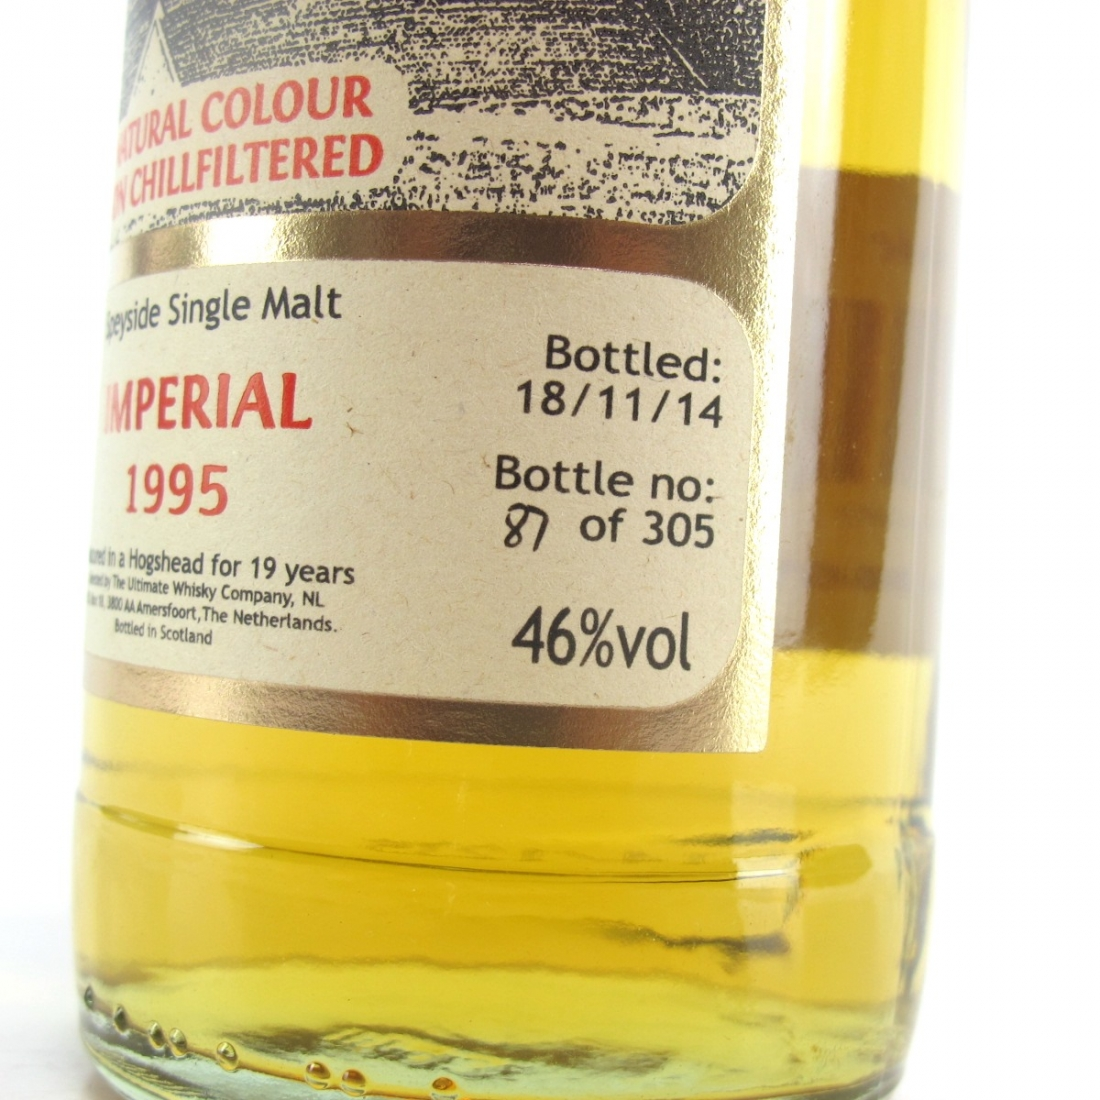 Imperial 1995 The Ultimate 19 Year Old